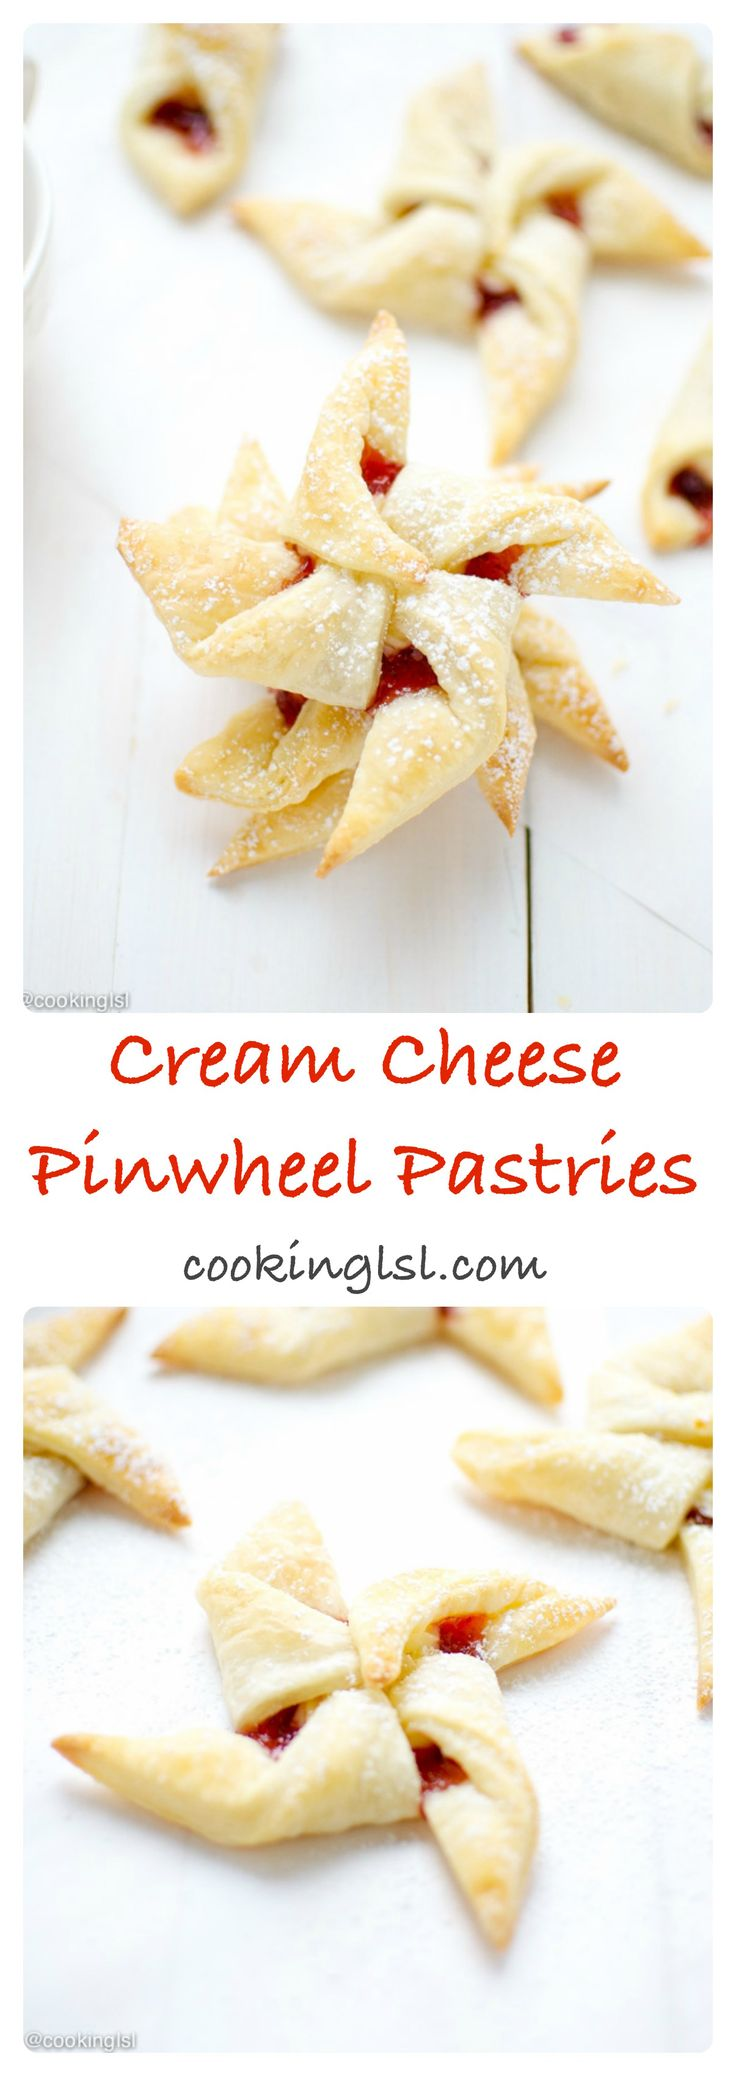 Cherry-Jam-Cream-Cheese-Pastries-Pinwheel-Cookies